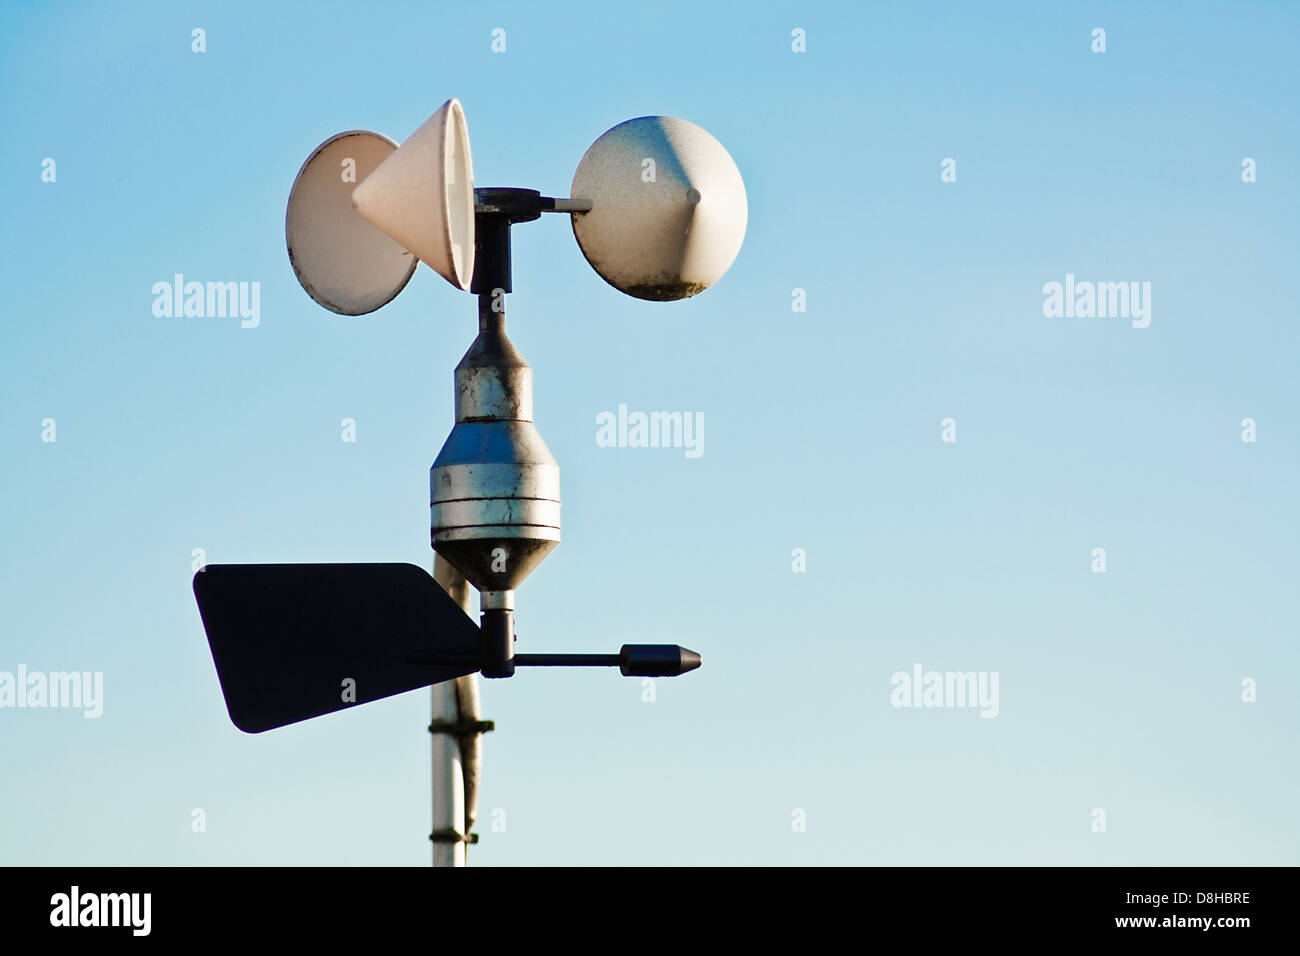 Anemometer On Weather Station Measuring Wind Speed For